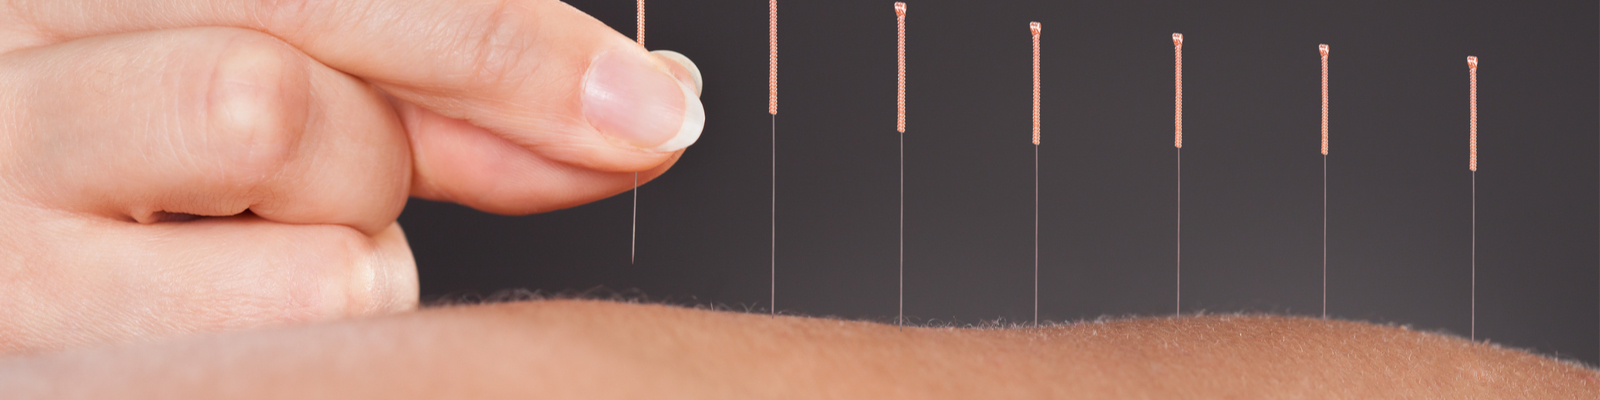 Acupuncture Needles Back